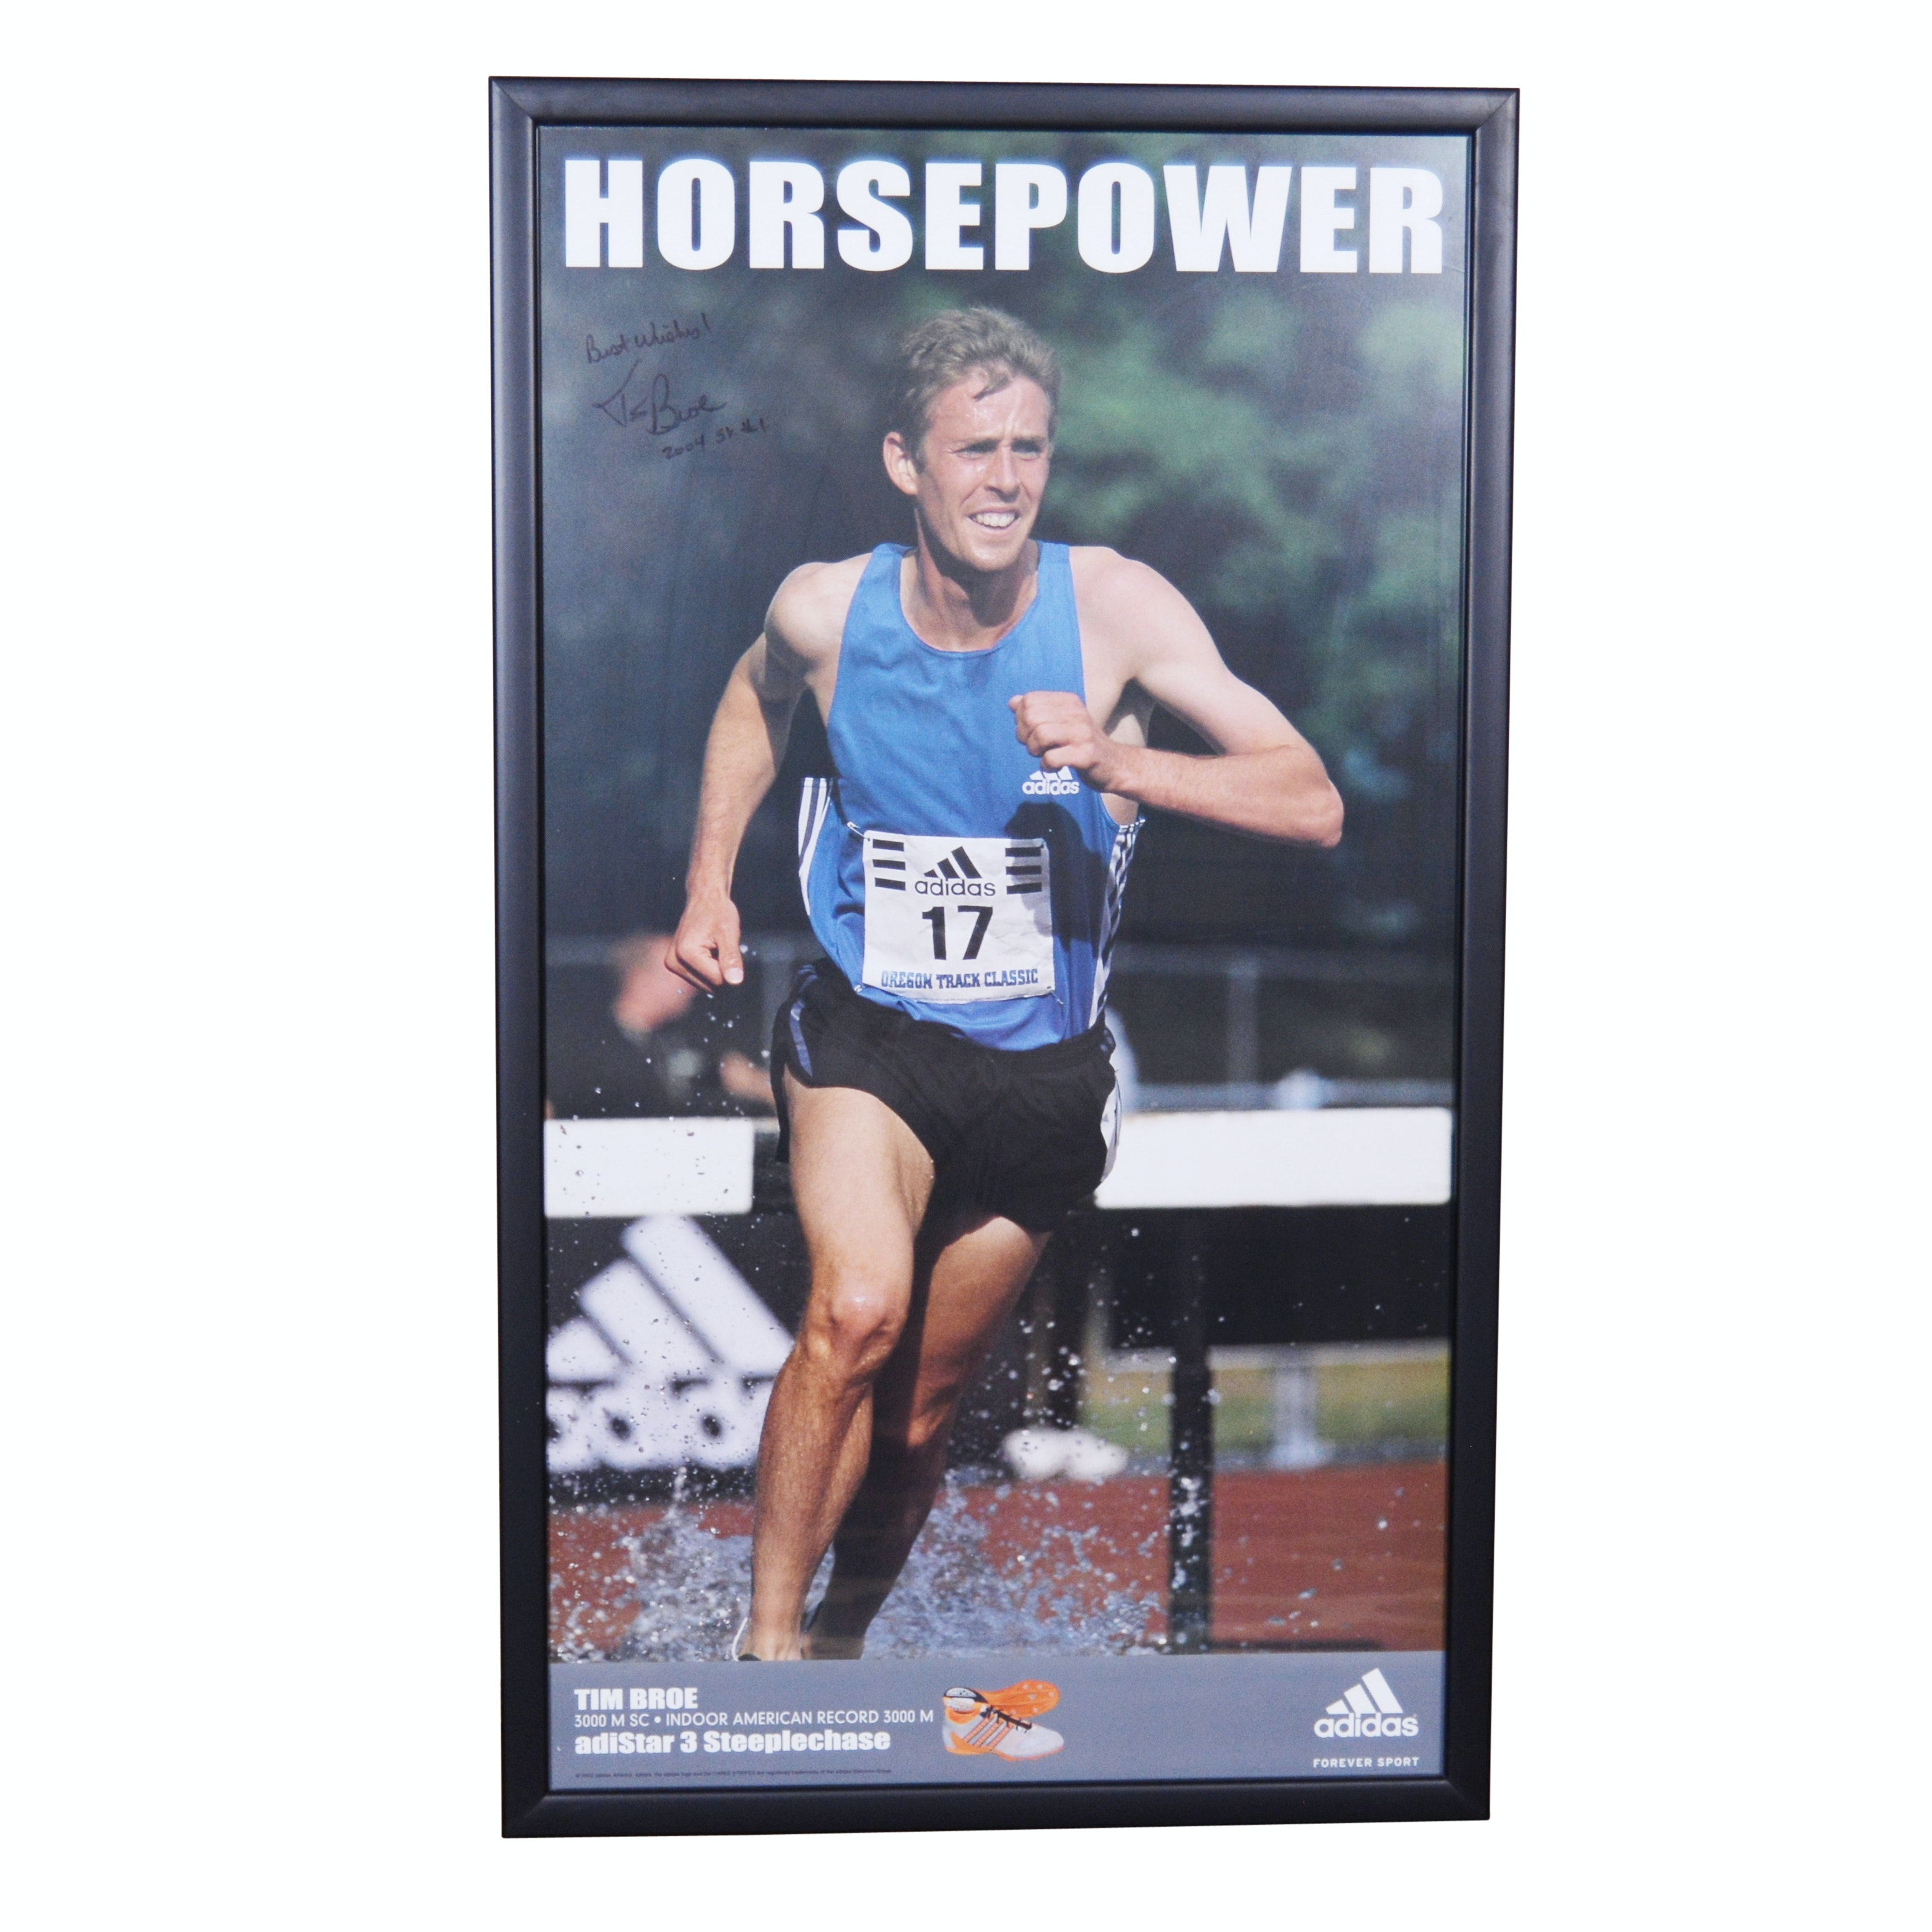 Tim Boe Horsepower Motivational Poster